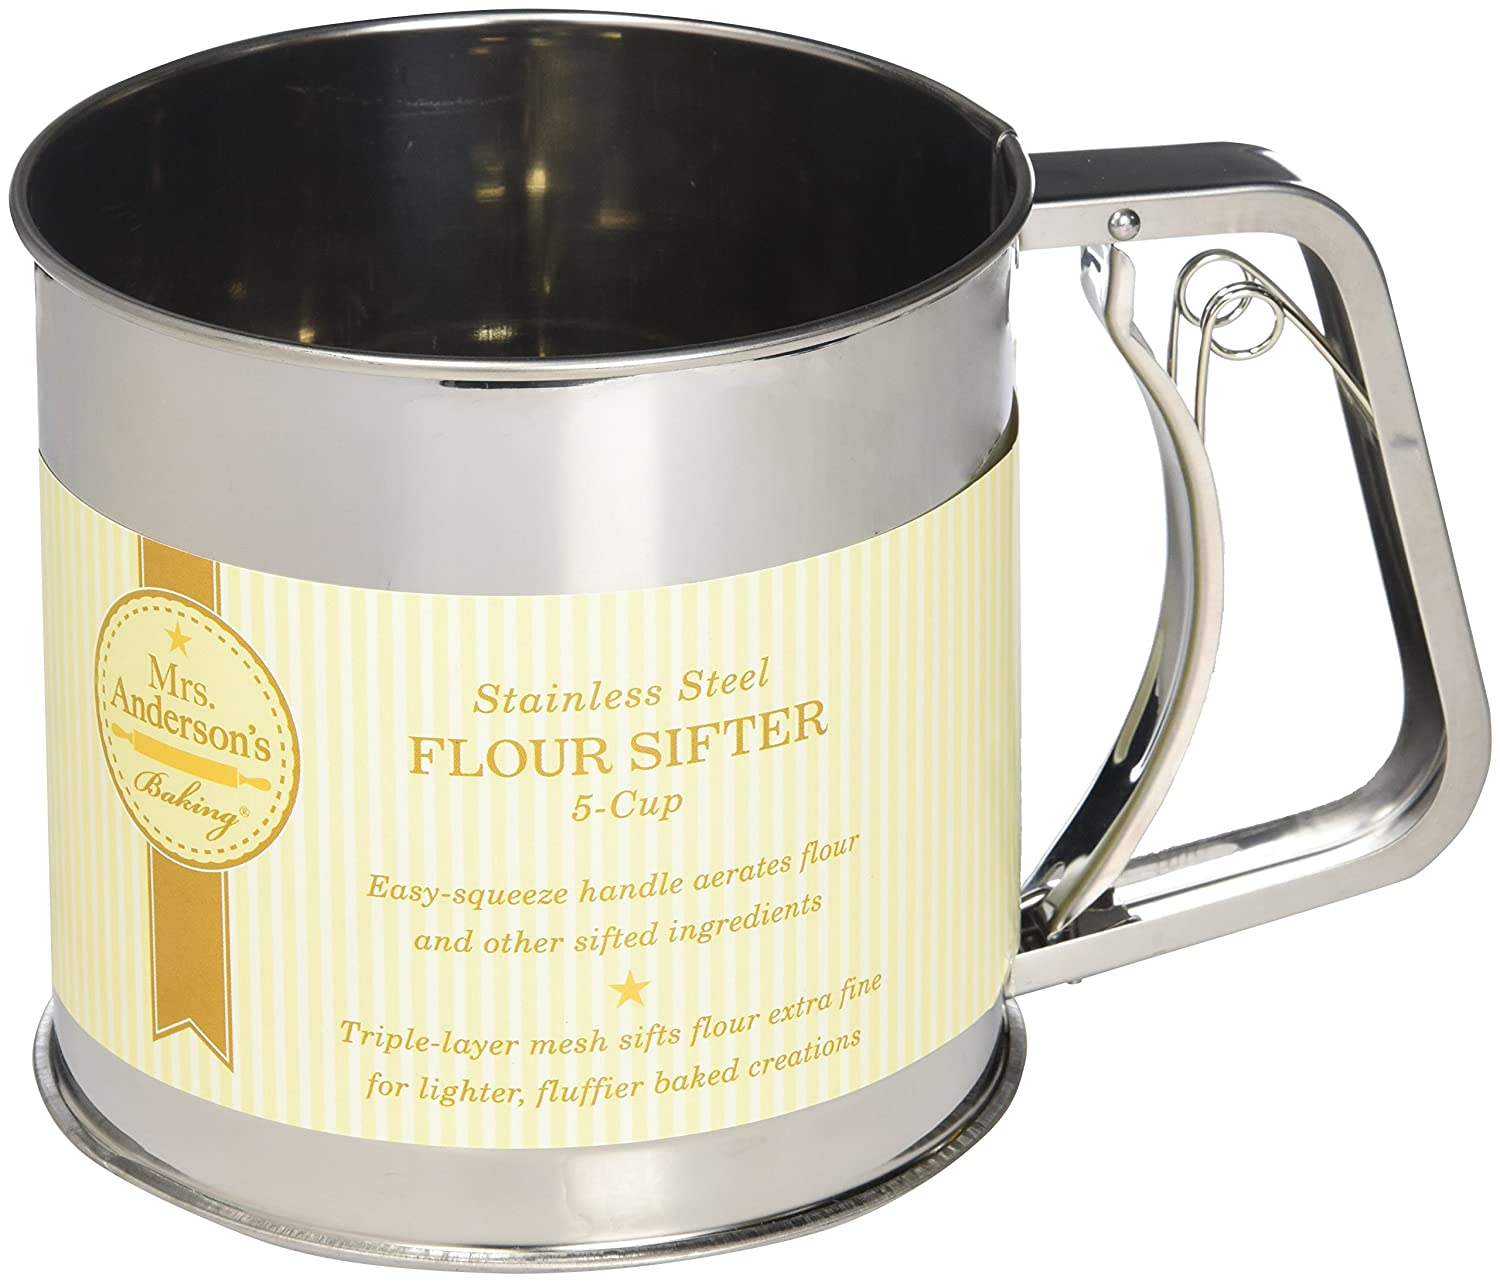 Mrs. Anderson's Baking Hand Crank Flour Icing Sugar Sifter, Stainless Steel, 1-Cup Mrs. Anderson's Baking 28013